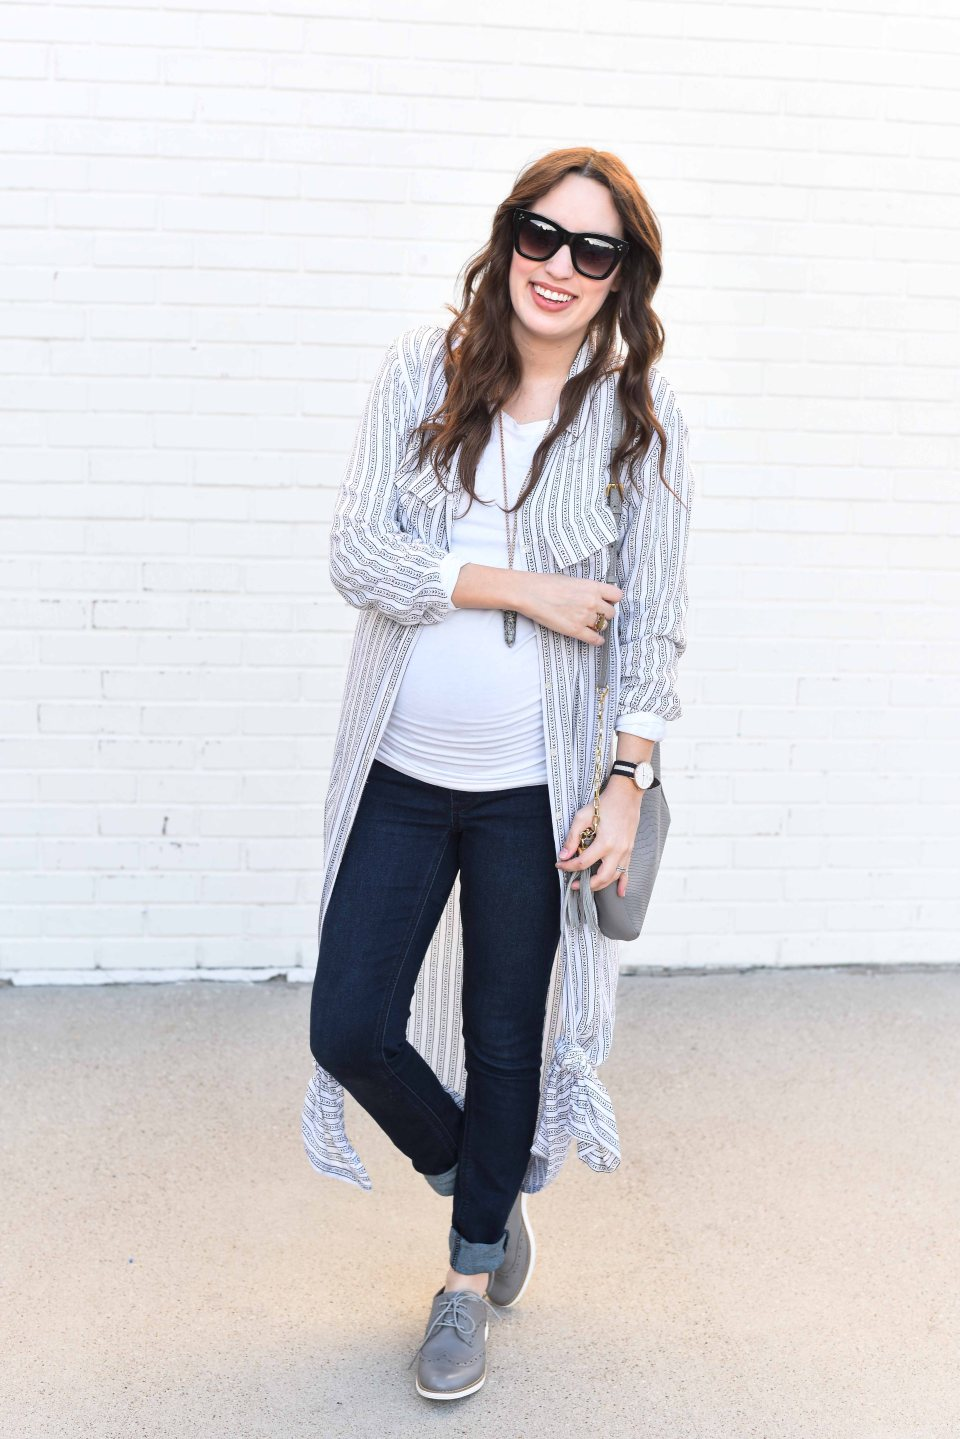 Fashion Blogger Alice Kerley styles a Planet Blue Button Down Dress over a tee and jeans for an easy maternity outfit.